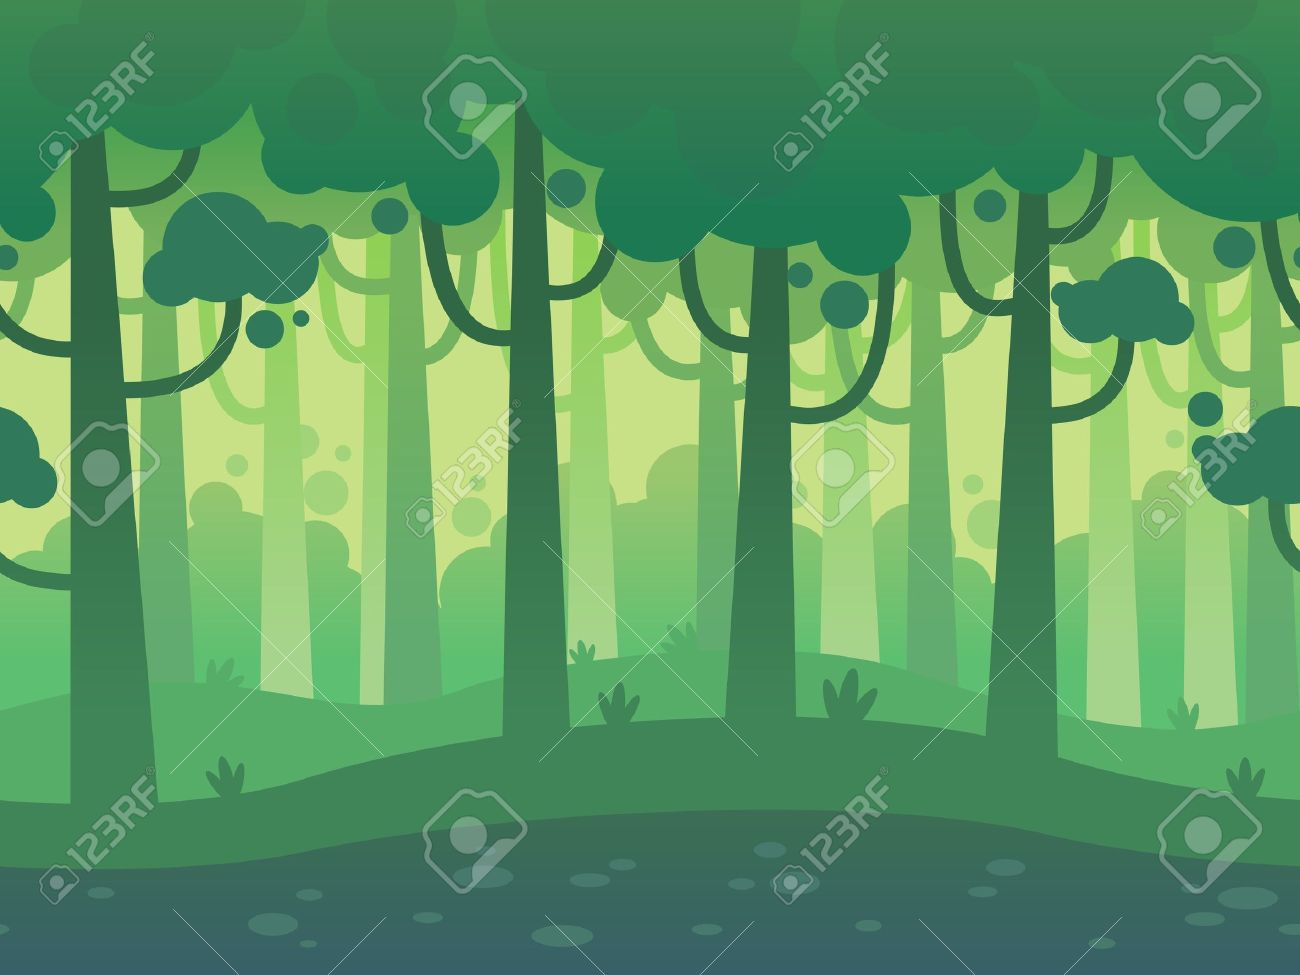 Game Seamless Horizontal Forest Background for side scrolling 2D games, action, adventure, hack and slash for PC computers, mobile apps and browsers - 51011298